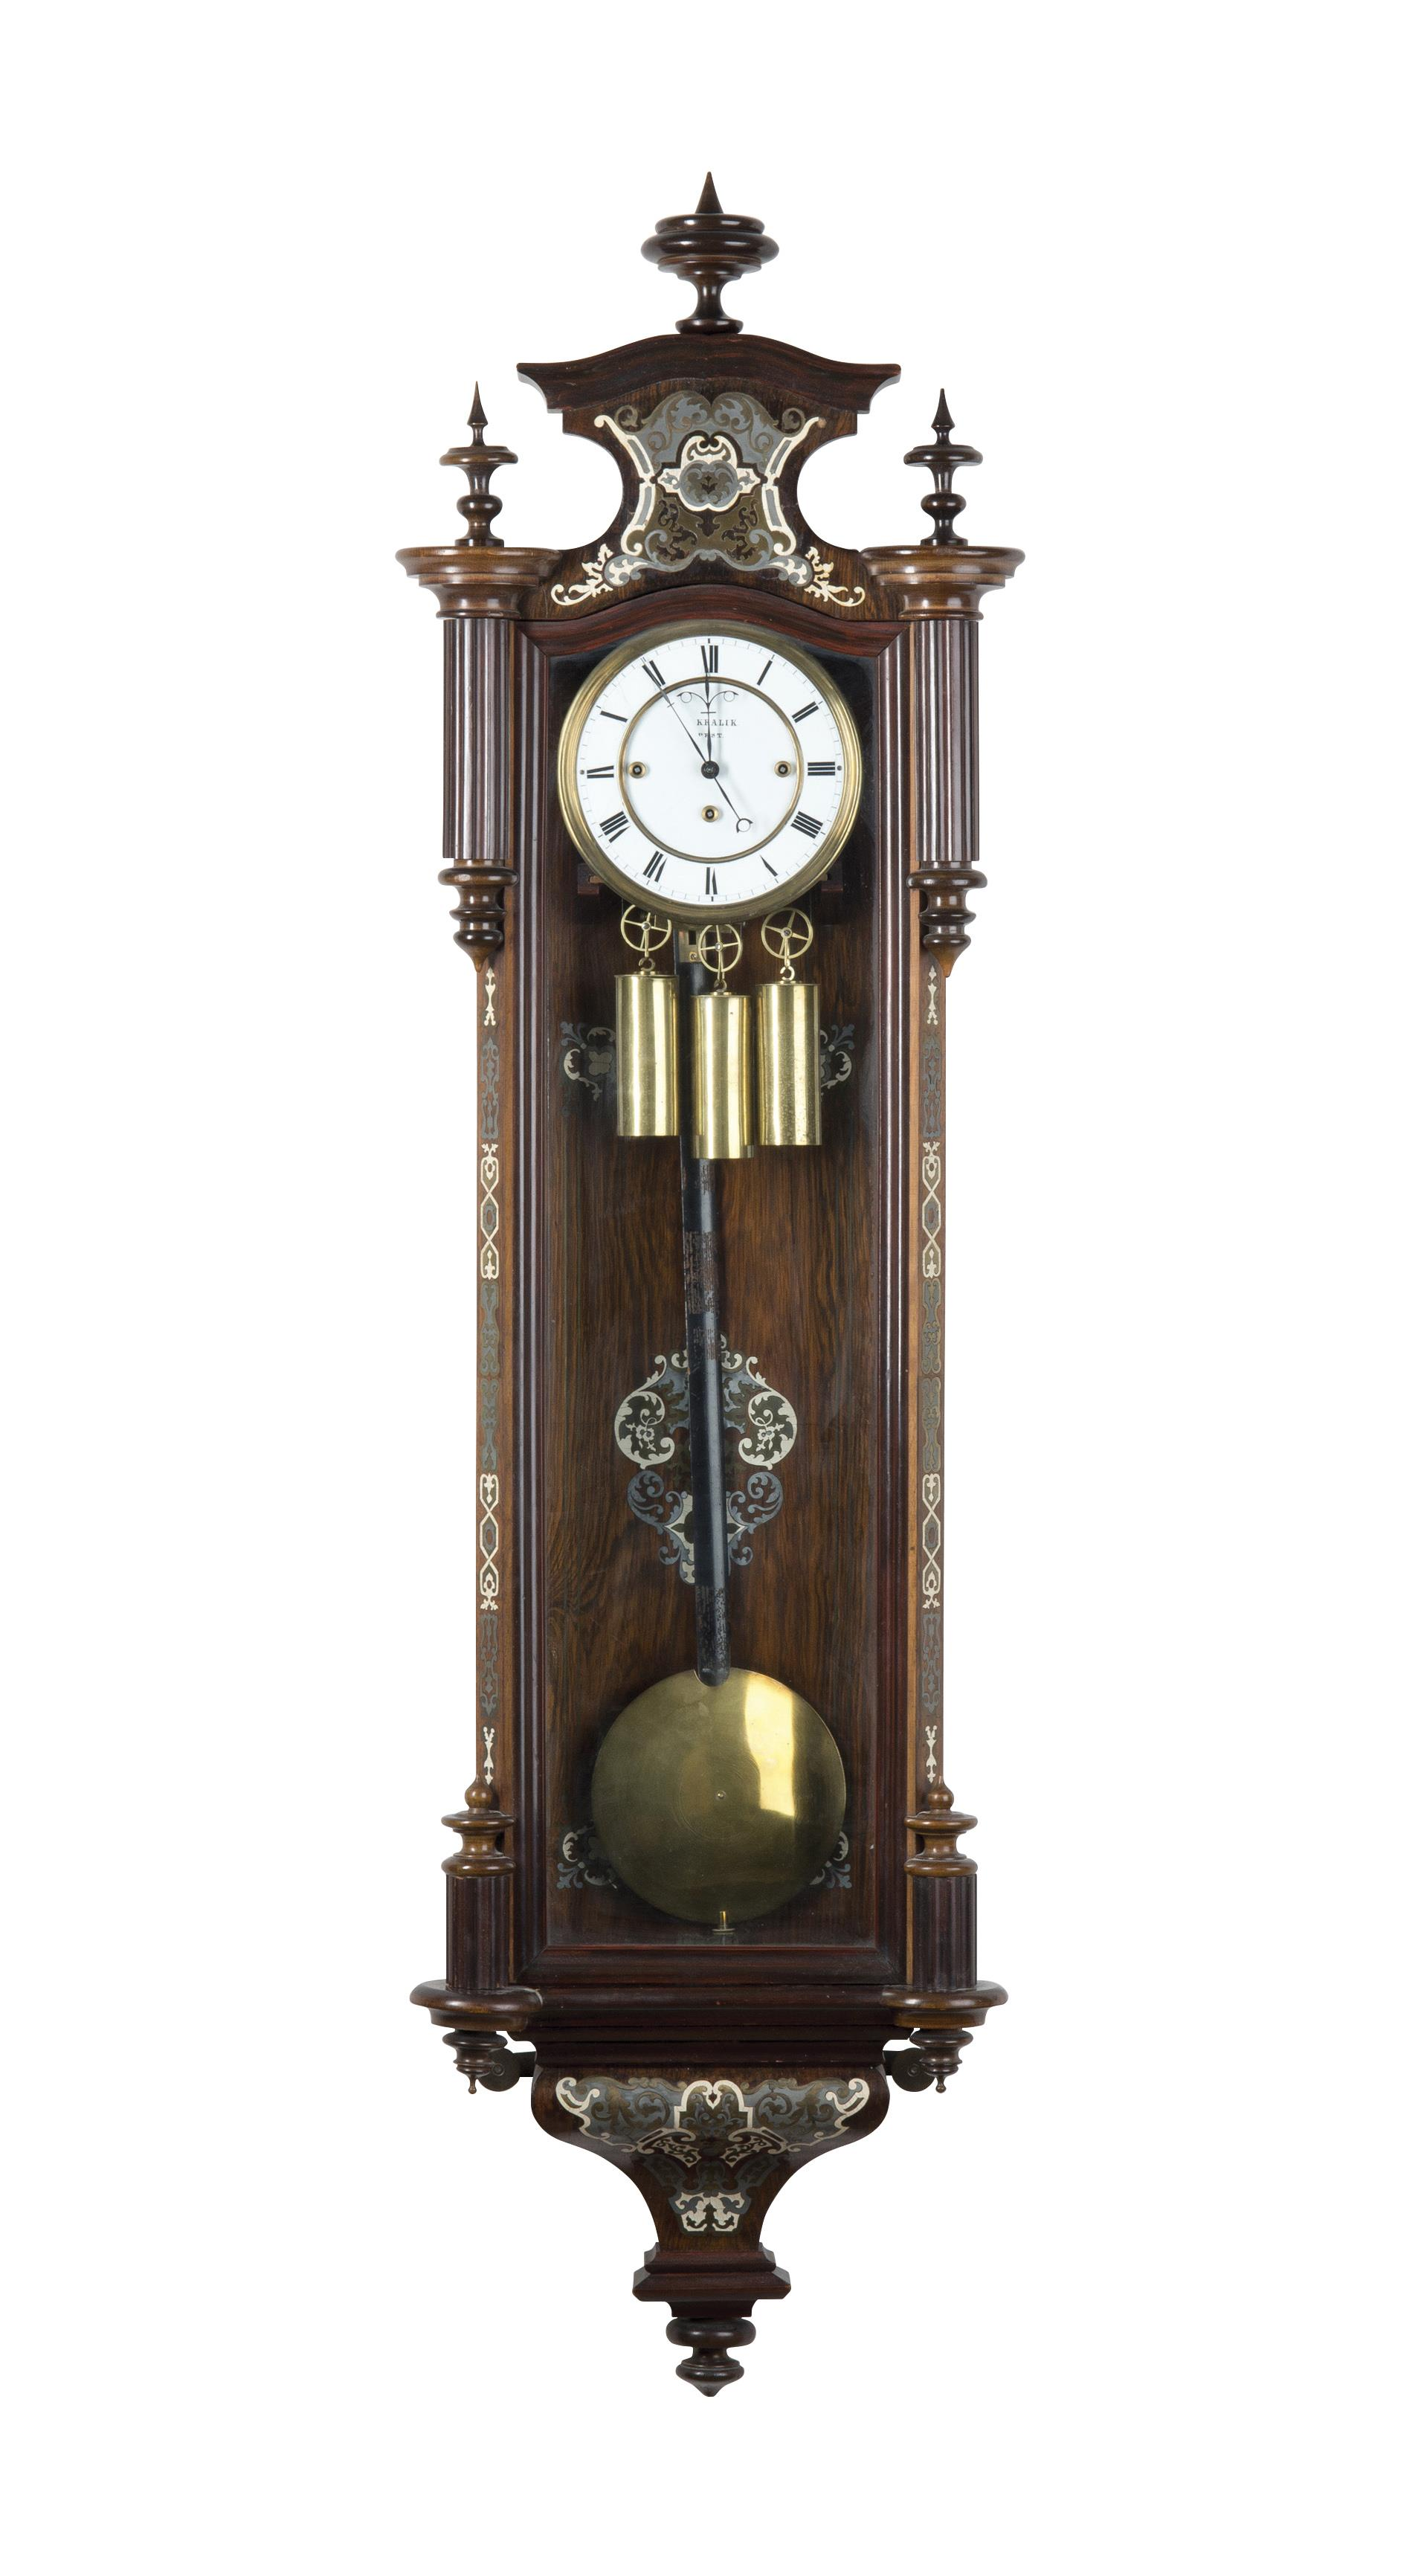 Luxury Wall Clock Art And Antiques 2017 11 25 Realized Price Czk 50 000 Dorotheum